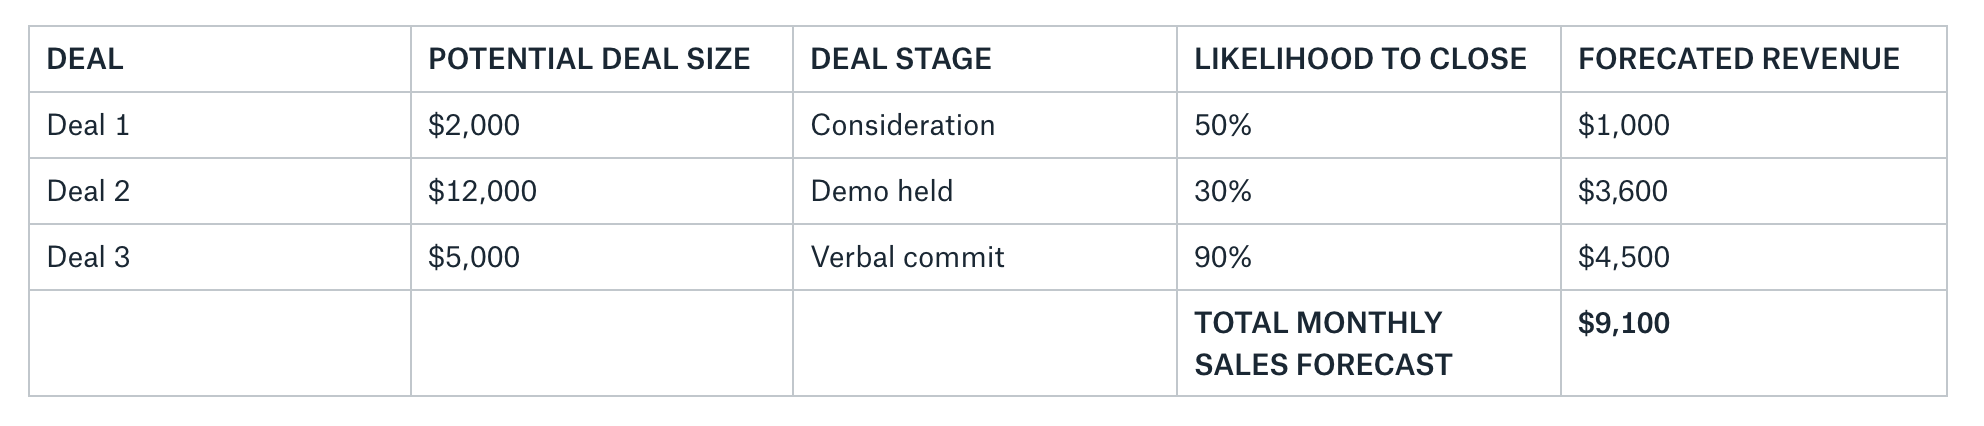 Assessing likelihood percentages by deal stage.